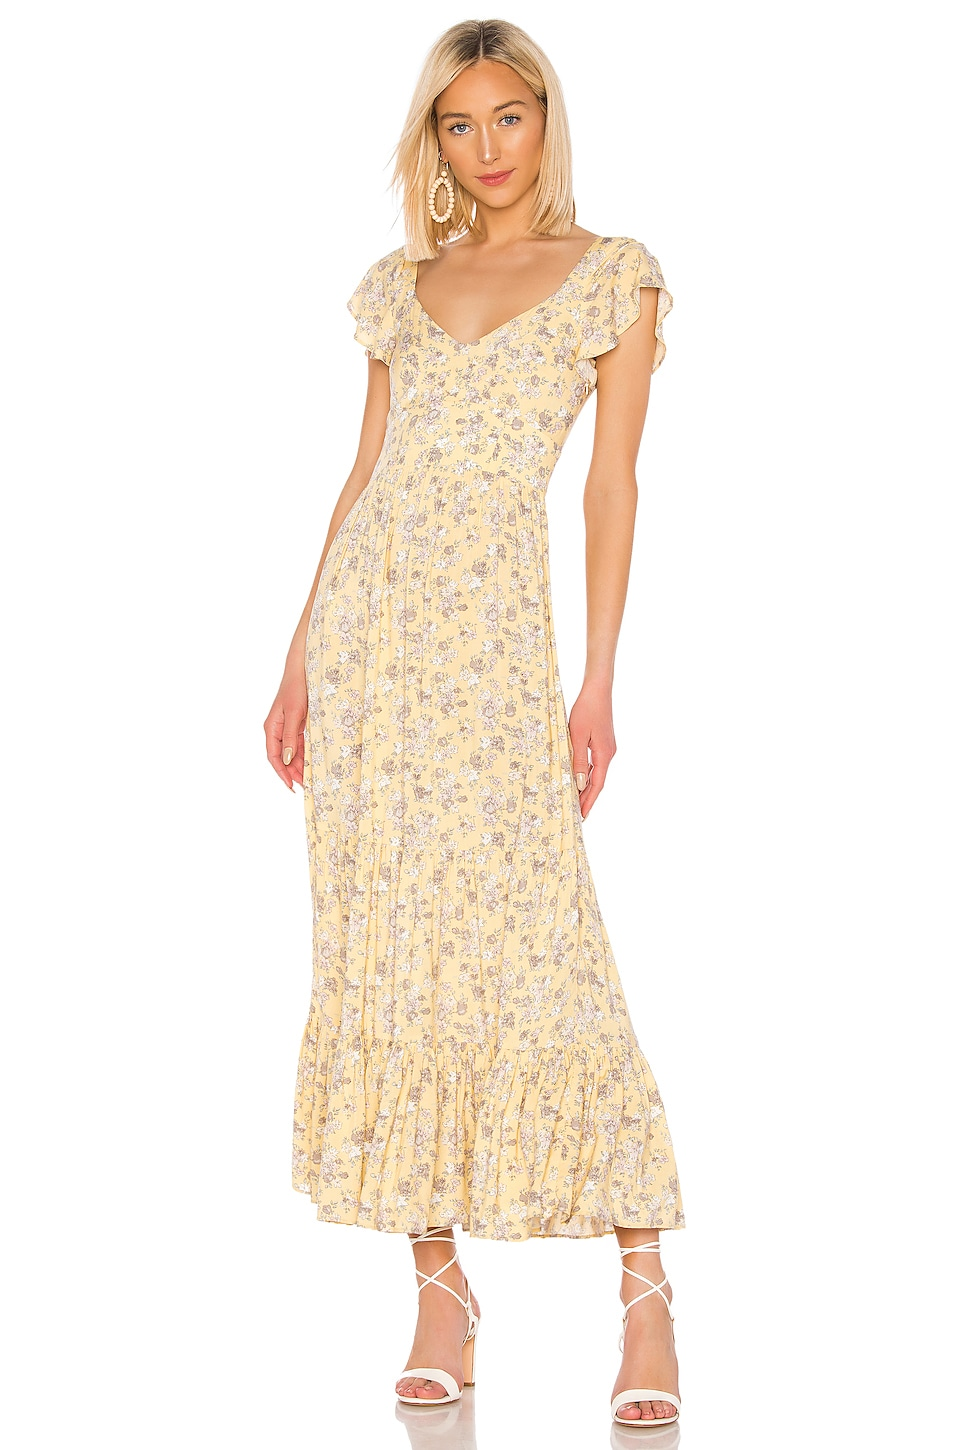 AUGUSTE Olsen Bella Maxi Dress in Lemon